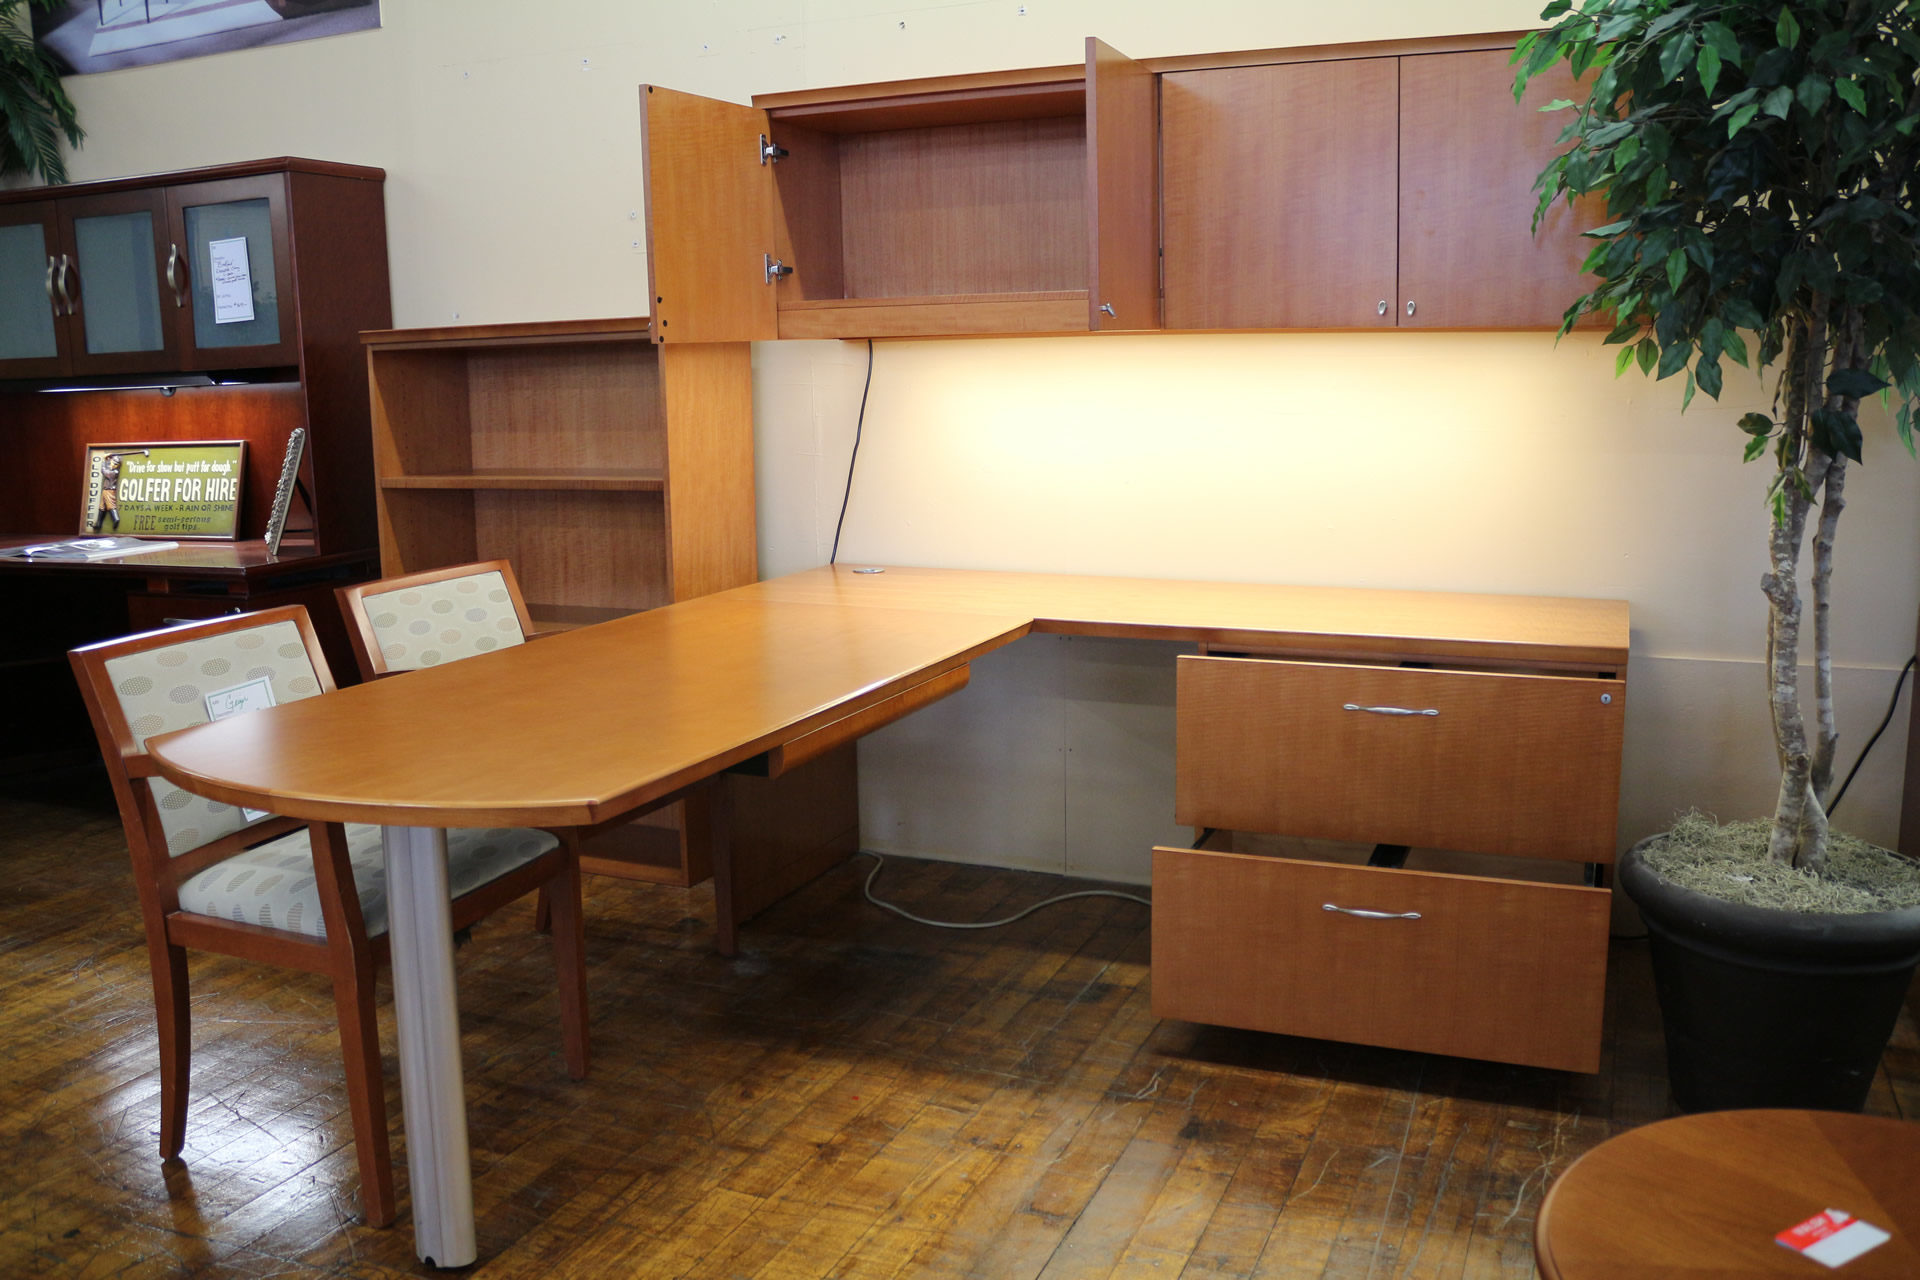 peartreeofficefurniture_peartreeofficefurniture_img_7544.jpg